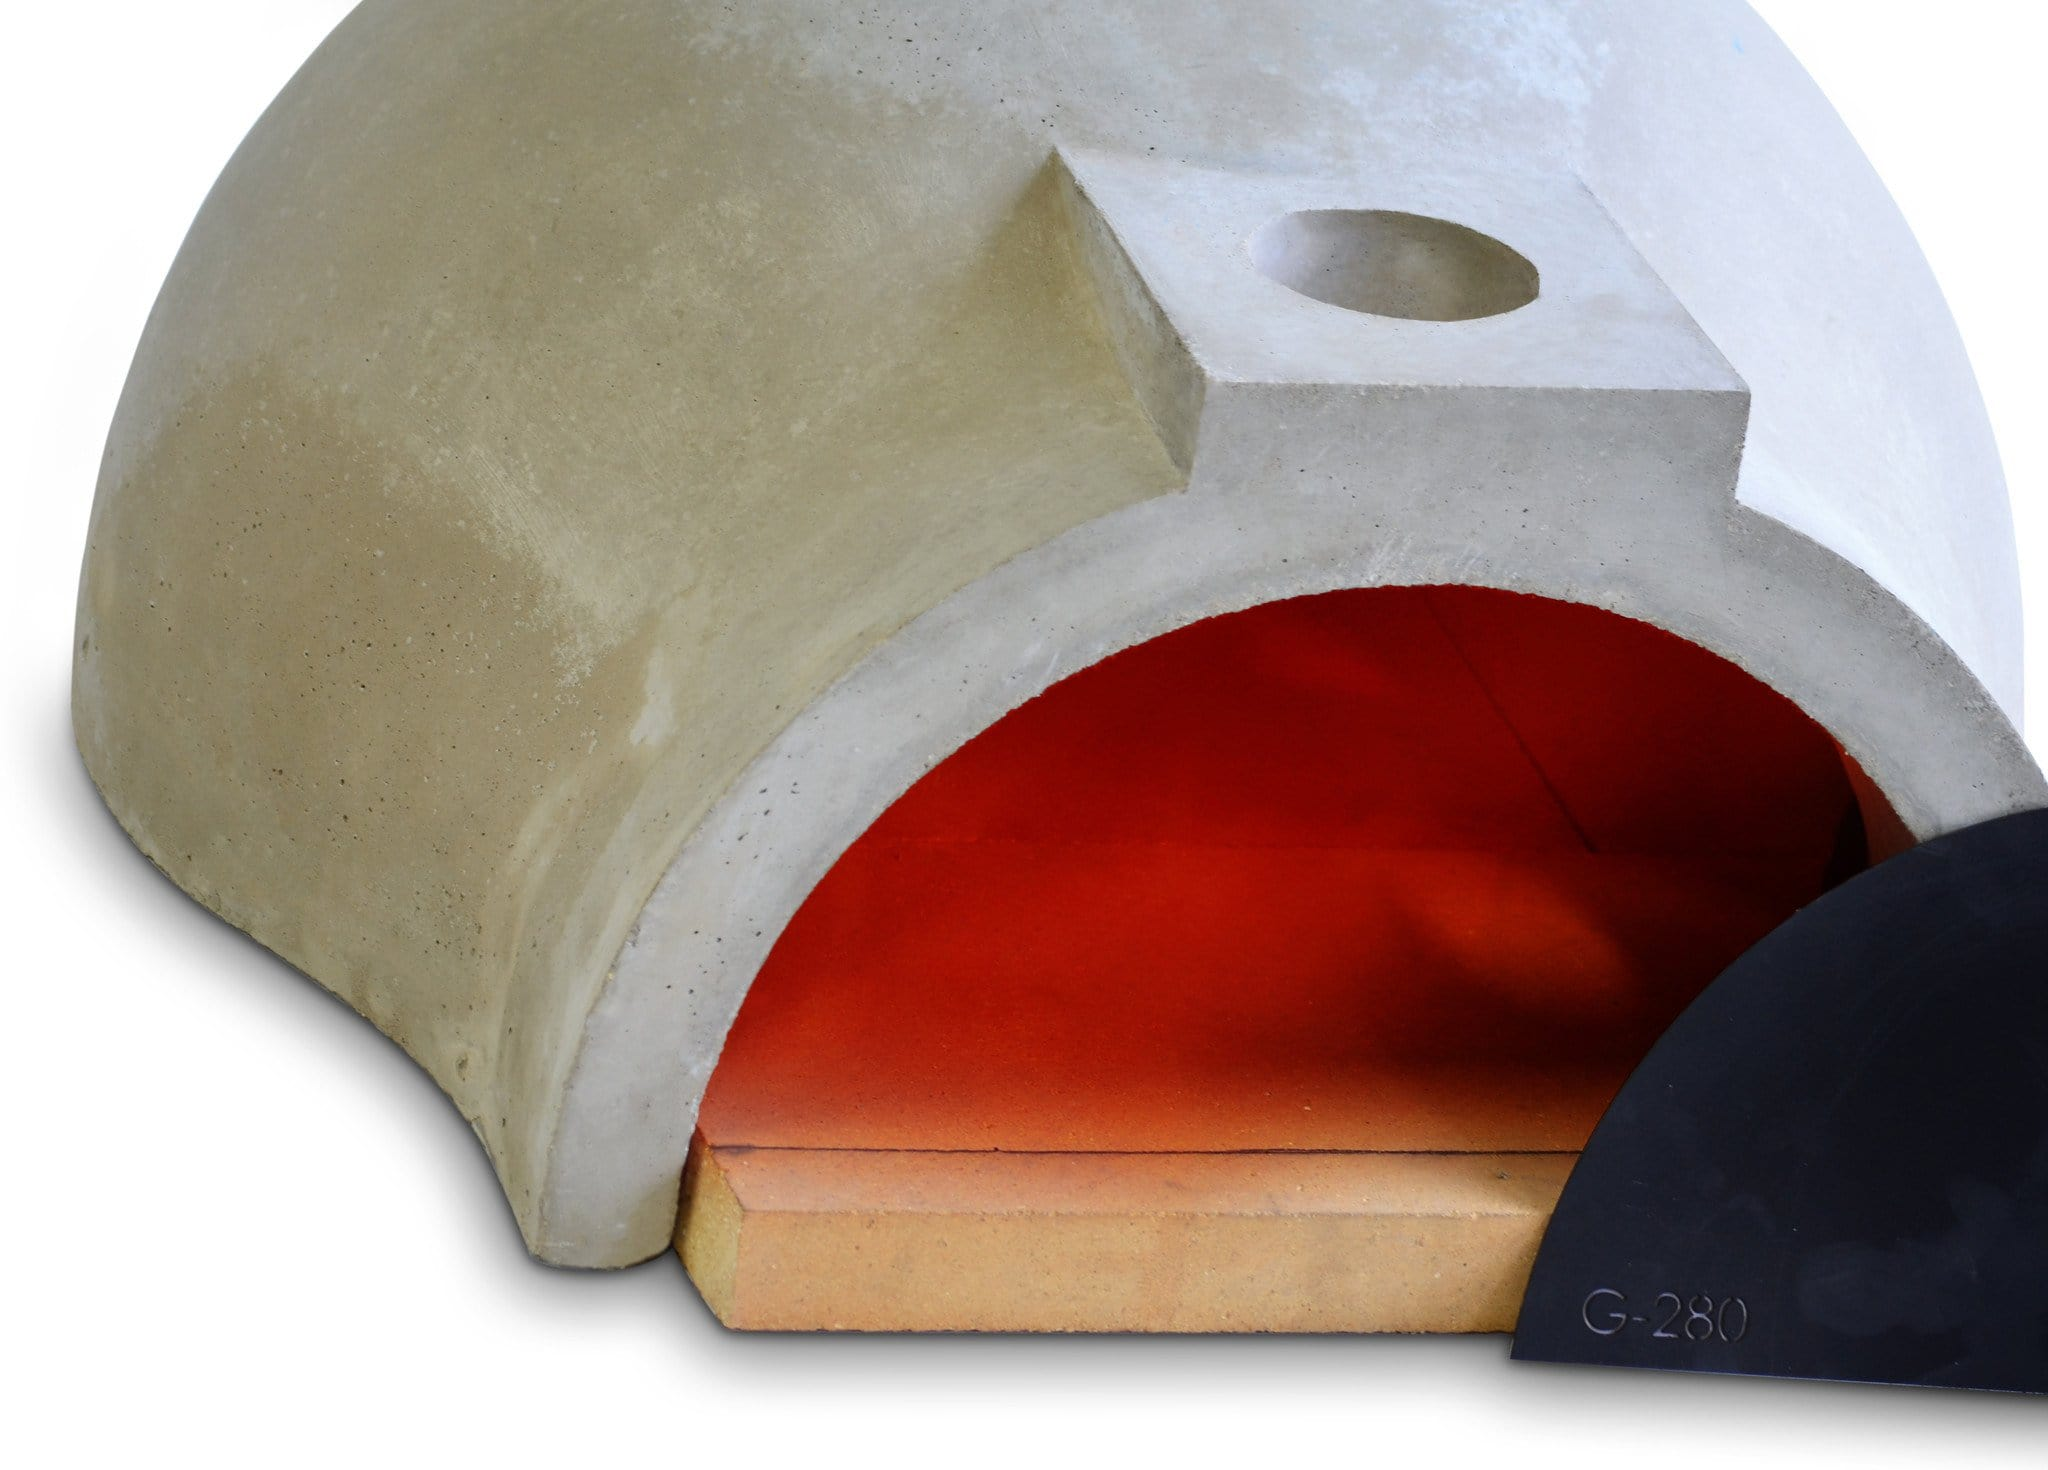 Pizza oven kit Californo Garzoni-280 isomatric view